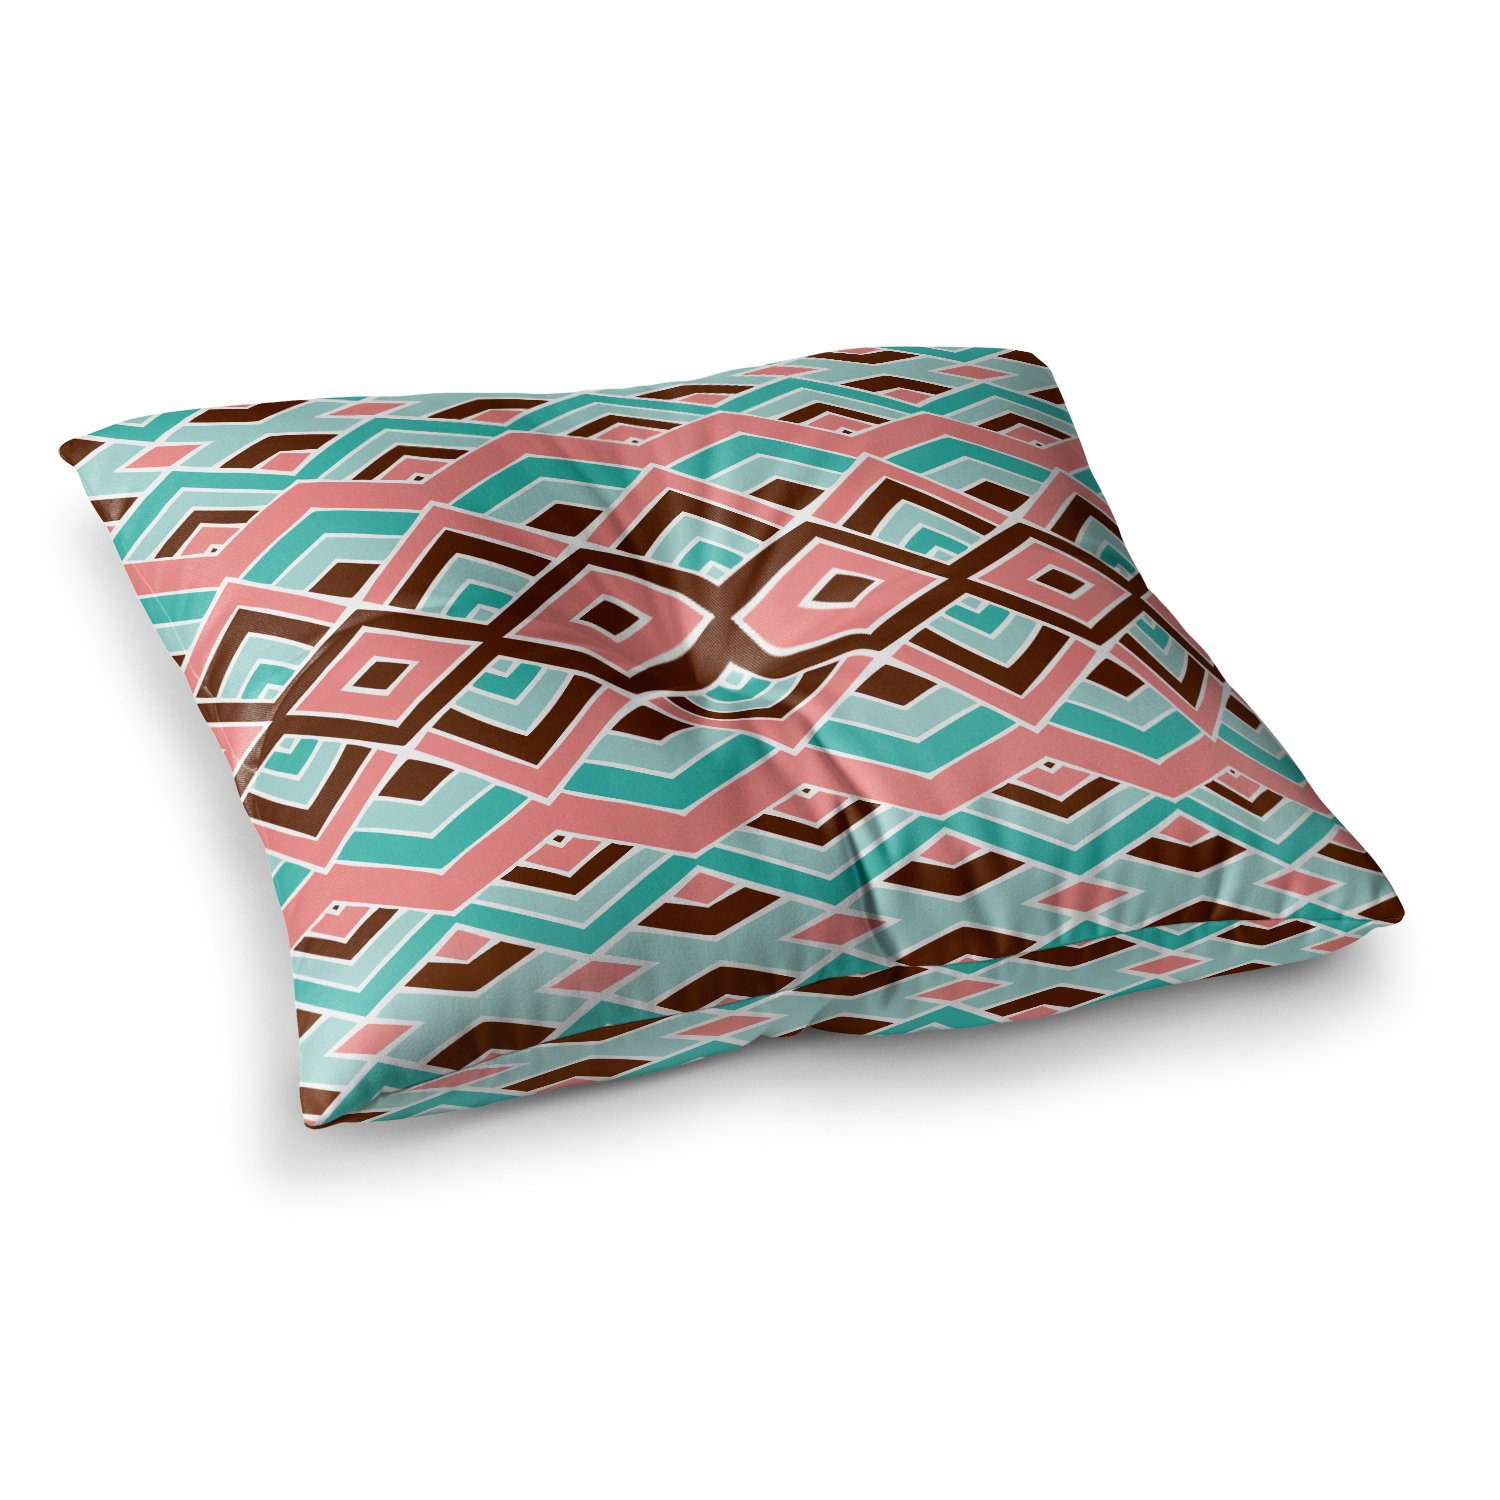 Kess InHouse Pom Graphic Design Eclectic Peach Teal 26 x 26 Square Floor Pillow